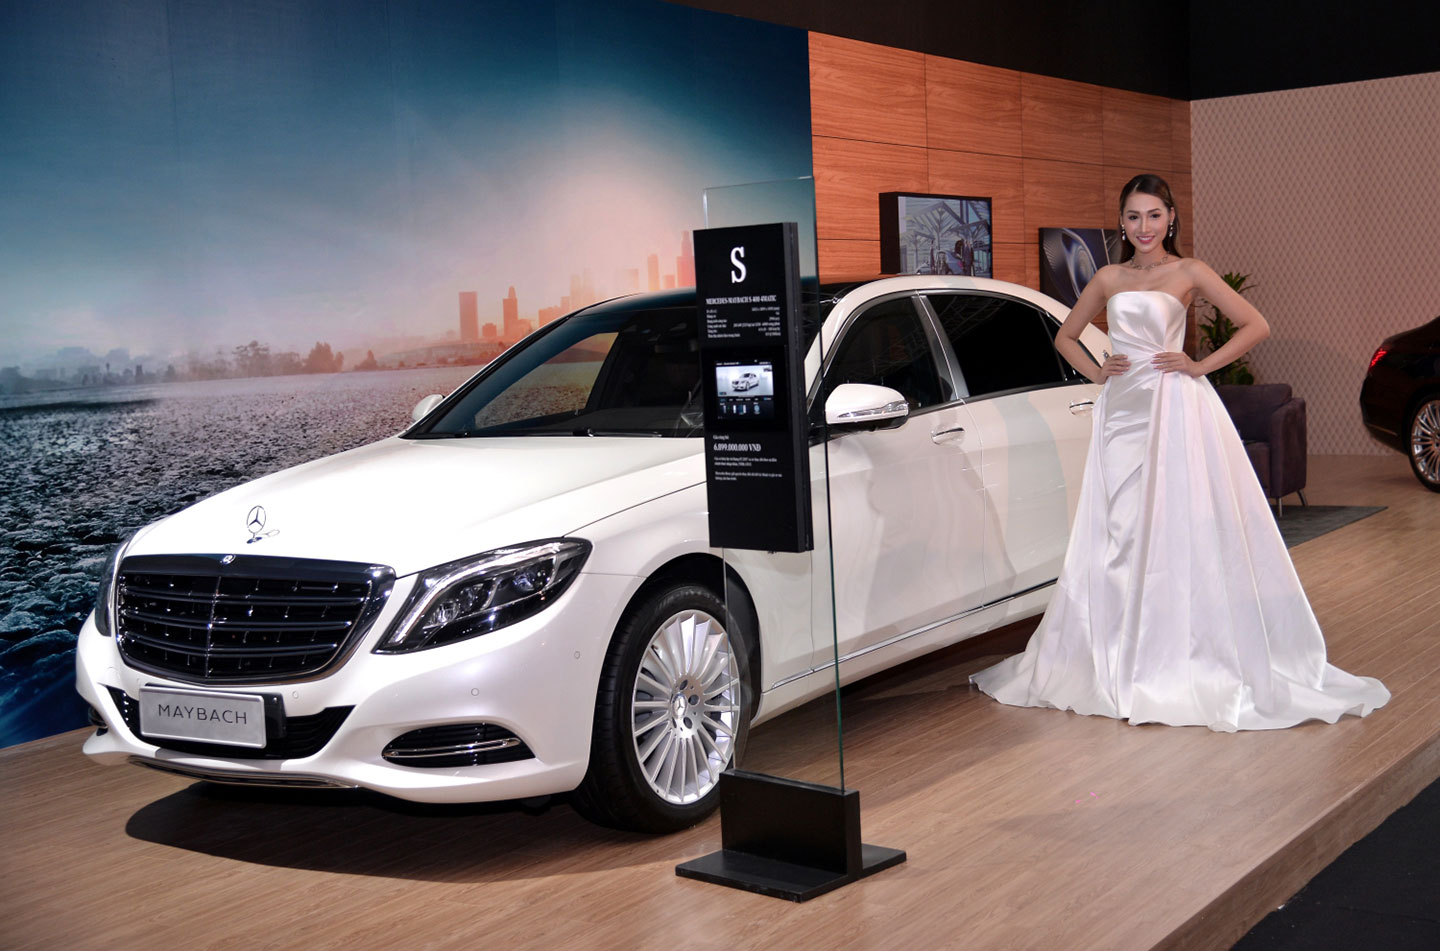 mercedes-benz-fascination-2017-nguoidep-12.jpg